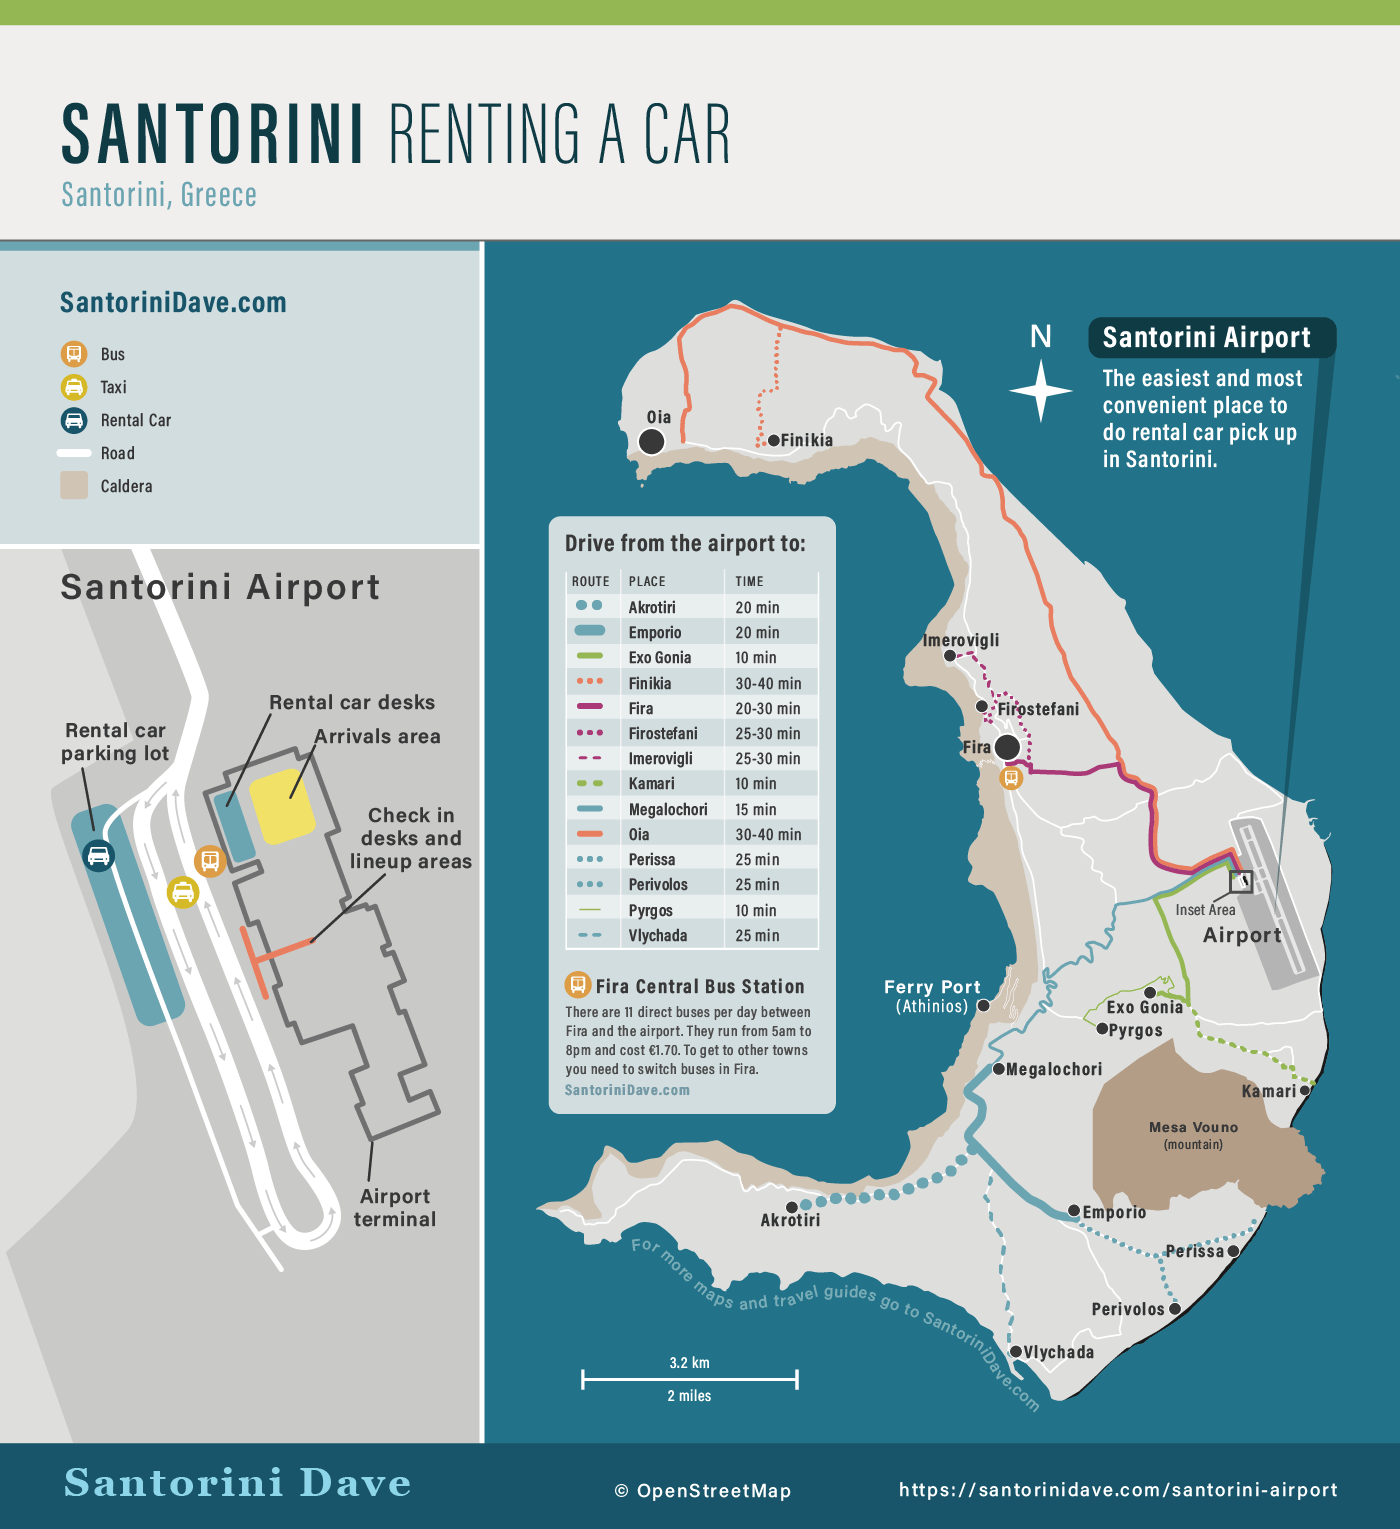 Map showing where to rent a car on Santorini